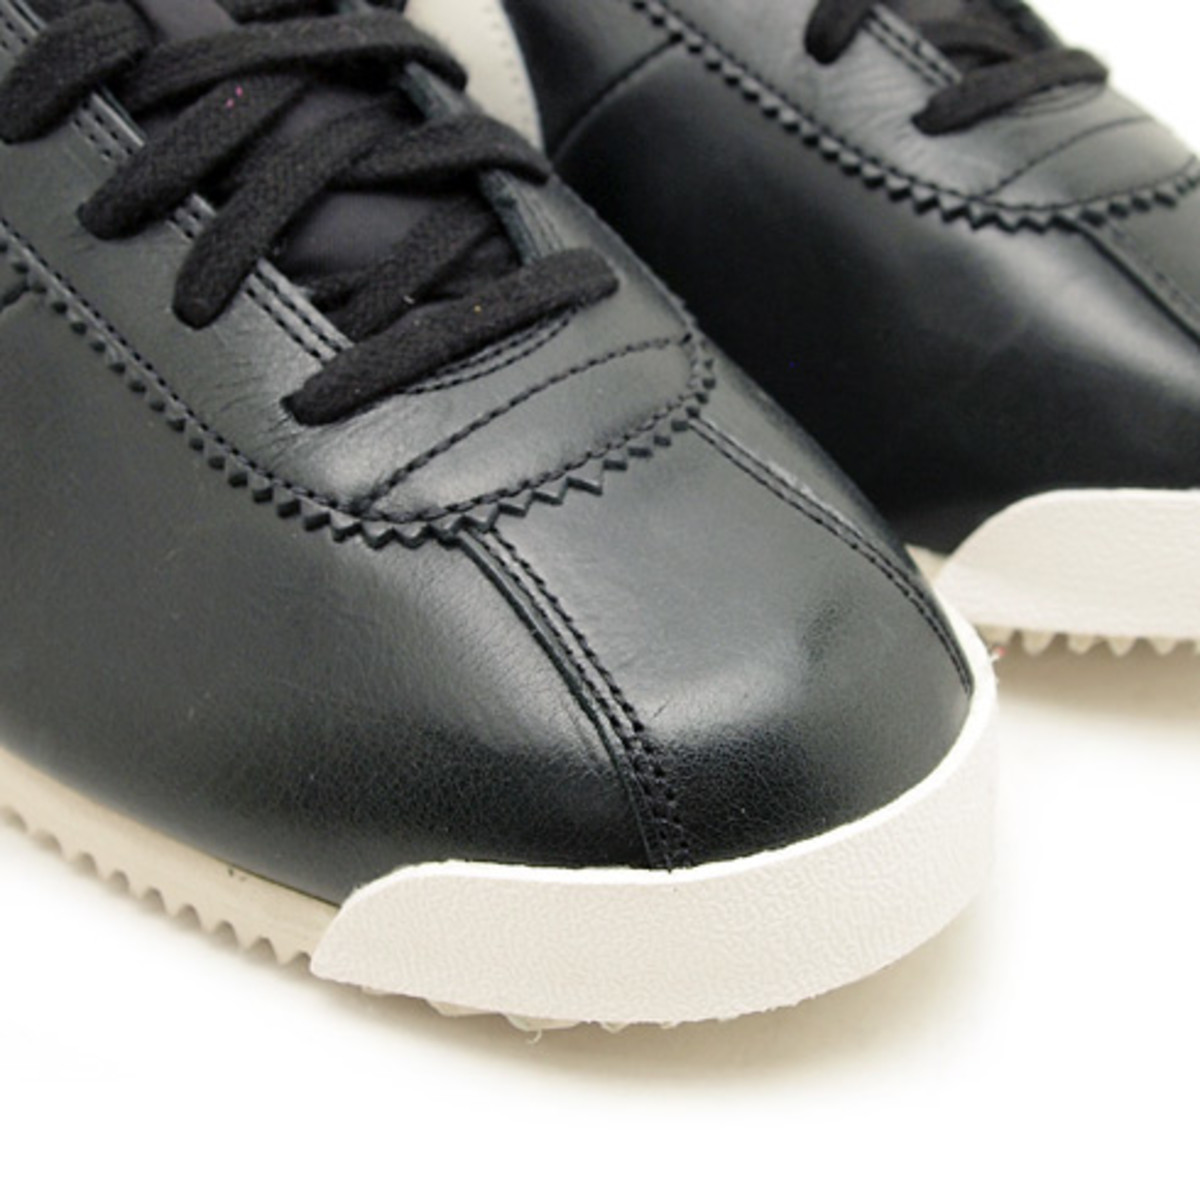 nike-cortez-classic-og-leather-16